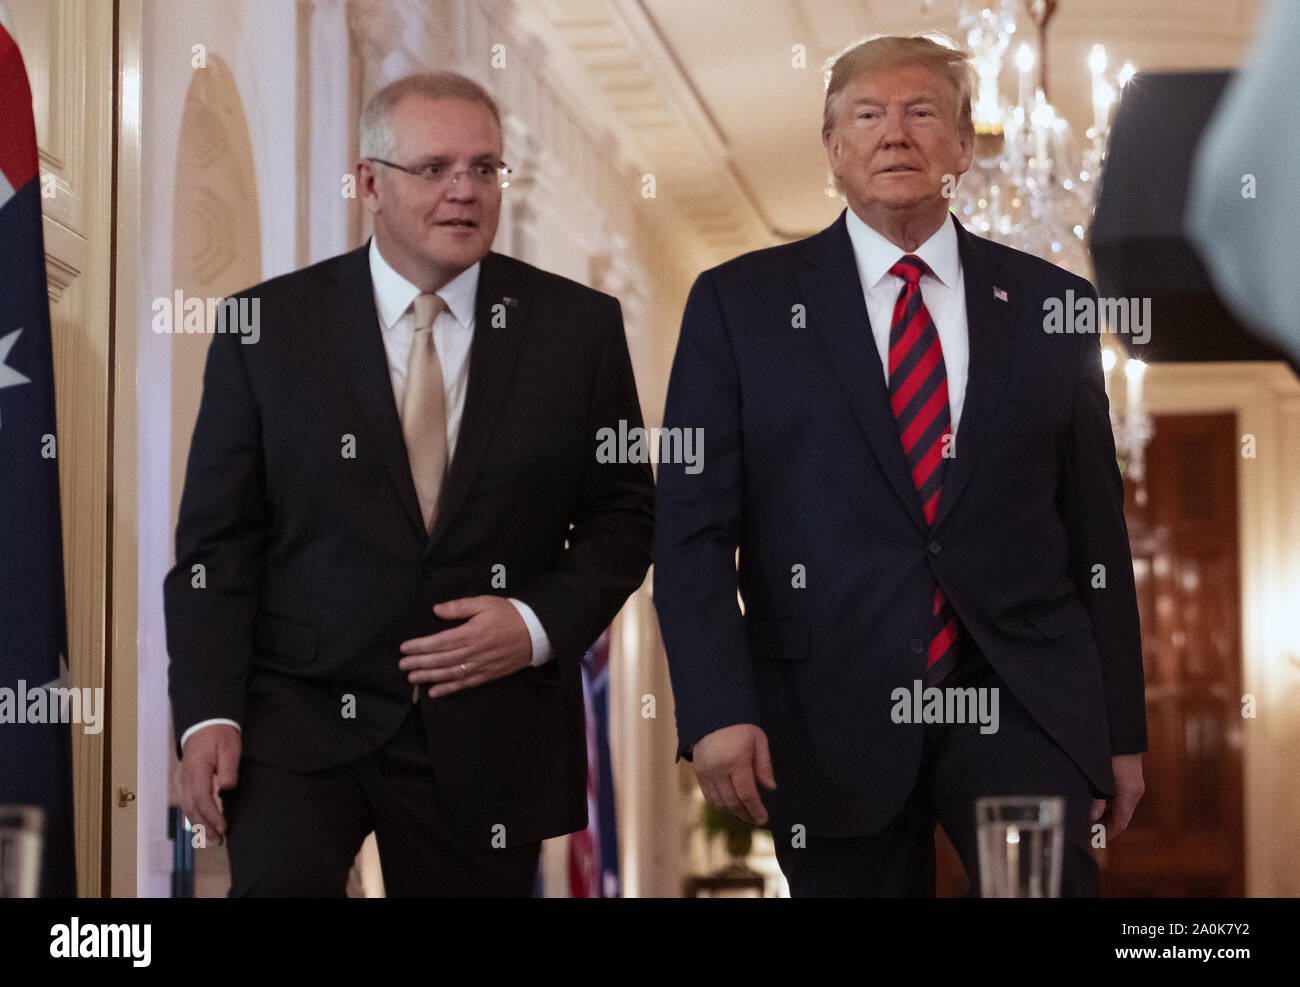 Washington DC, USA. 20th Sep, 2019. United States President Donald J. Trump, right, and Prime Minister Scott Morrison of Australia, left, arrive to conduct a joint press conference in the East Room of the White House in Washington, DC on Friday, September 20, 2019 Credit: Ron Sachs/CNP/ZUMA Wire/Alamy Live News Stock Photo